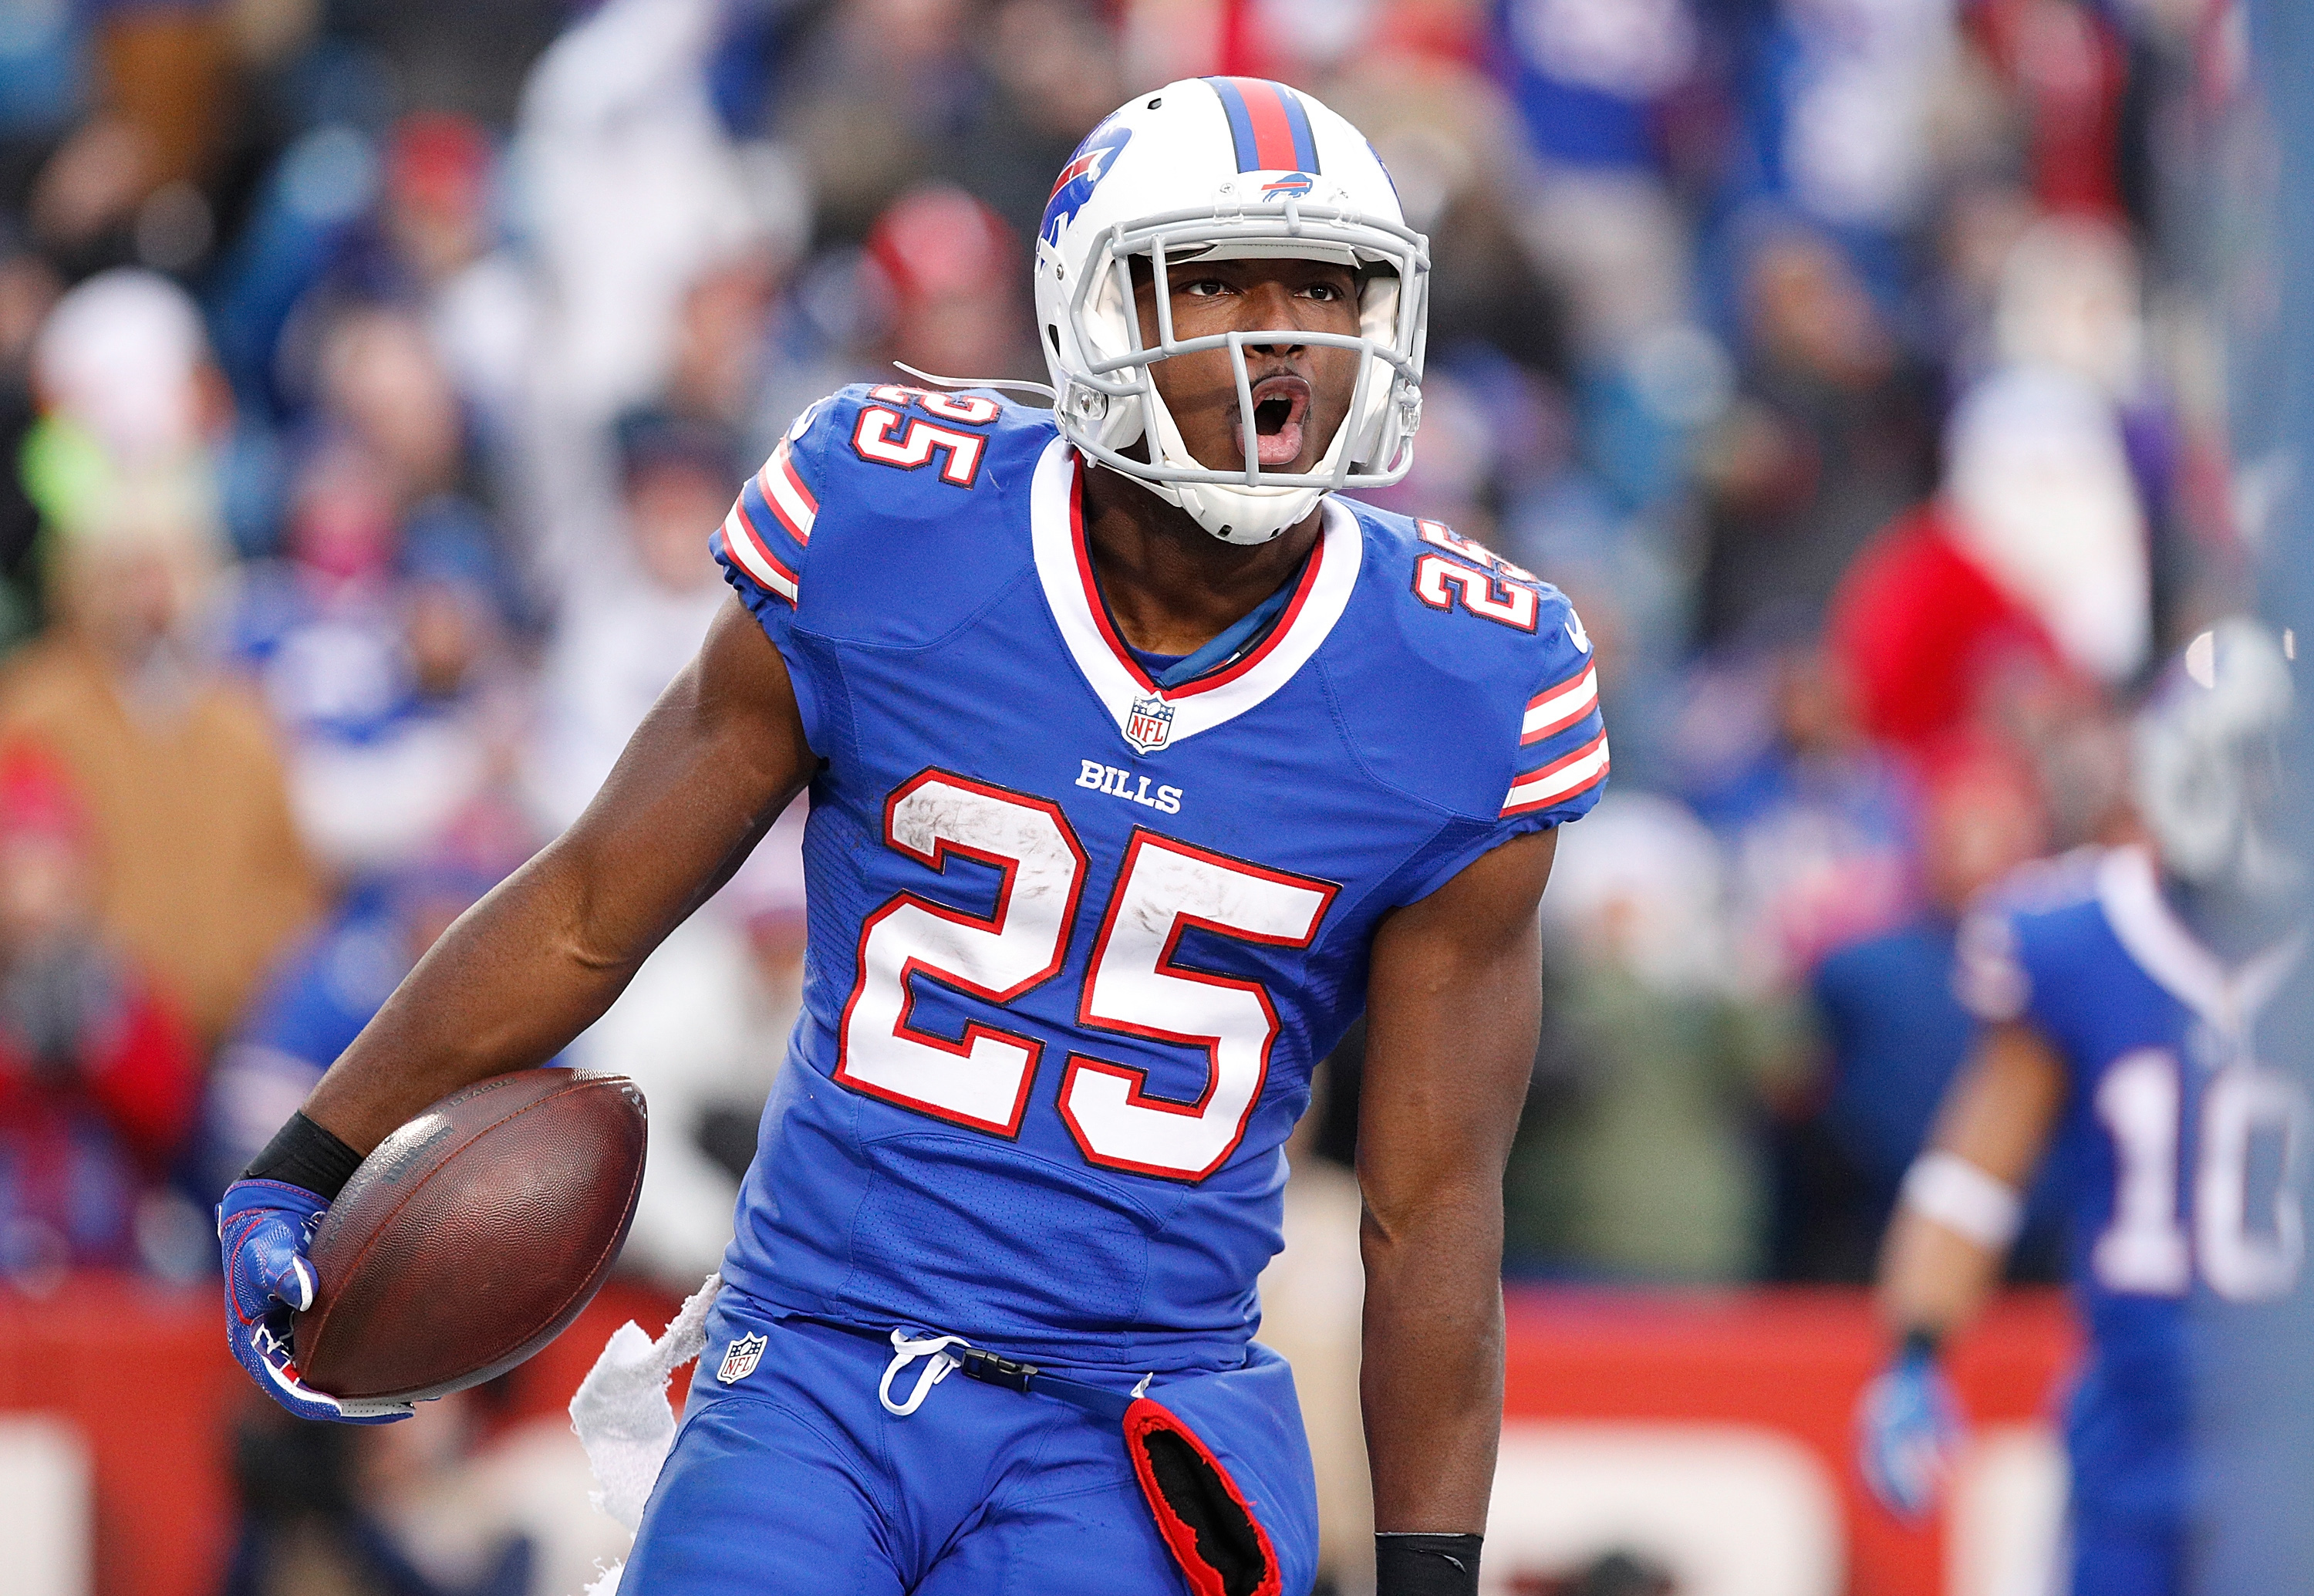 LeSean McCoy 6 Potential Free Agency Landing Spots if Bills